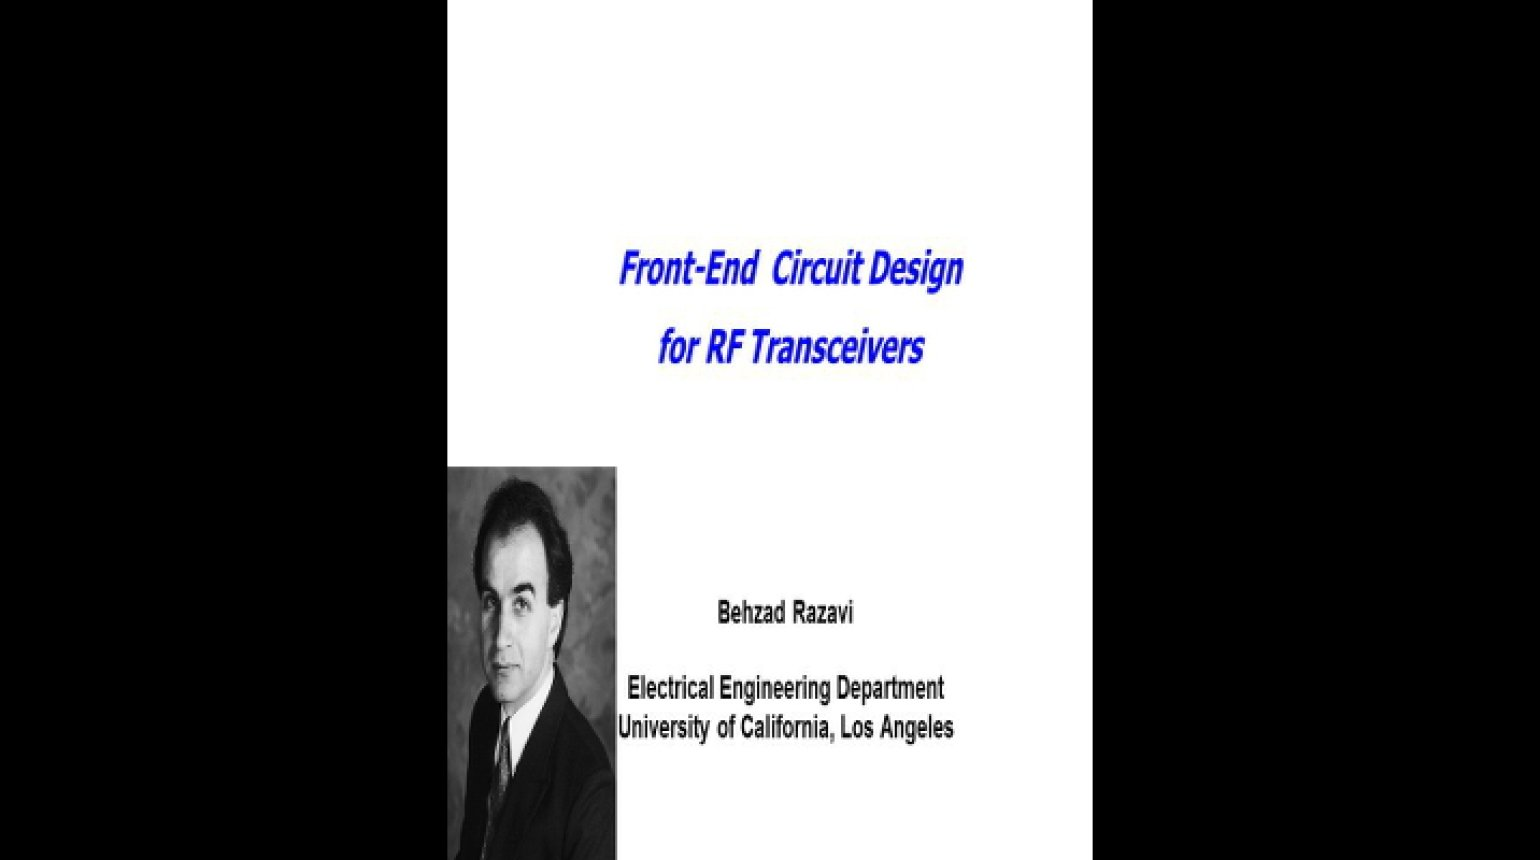 Front End Circuit Design for RF Transceivers Video